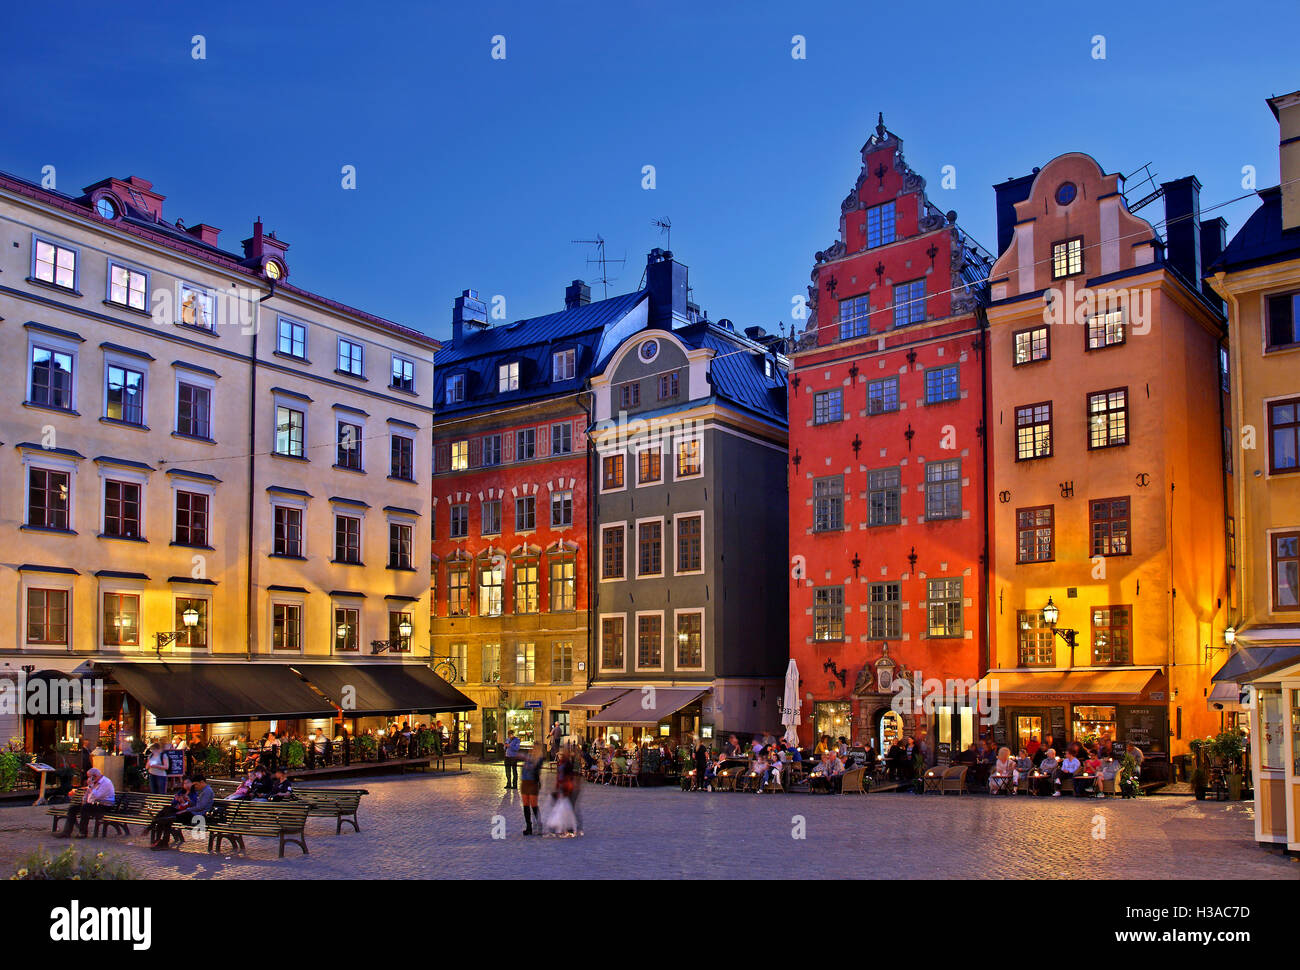 Stortorget square in Gamla Stan, the 'old town' of Stockholm, Sweden. - Stock Image